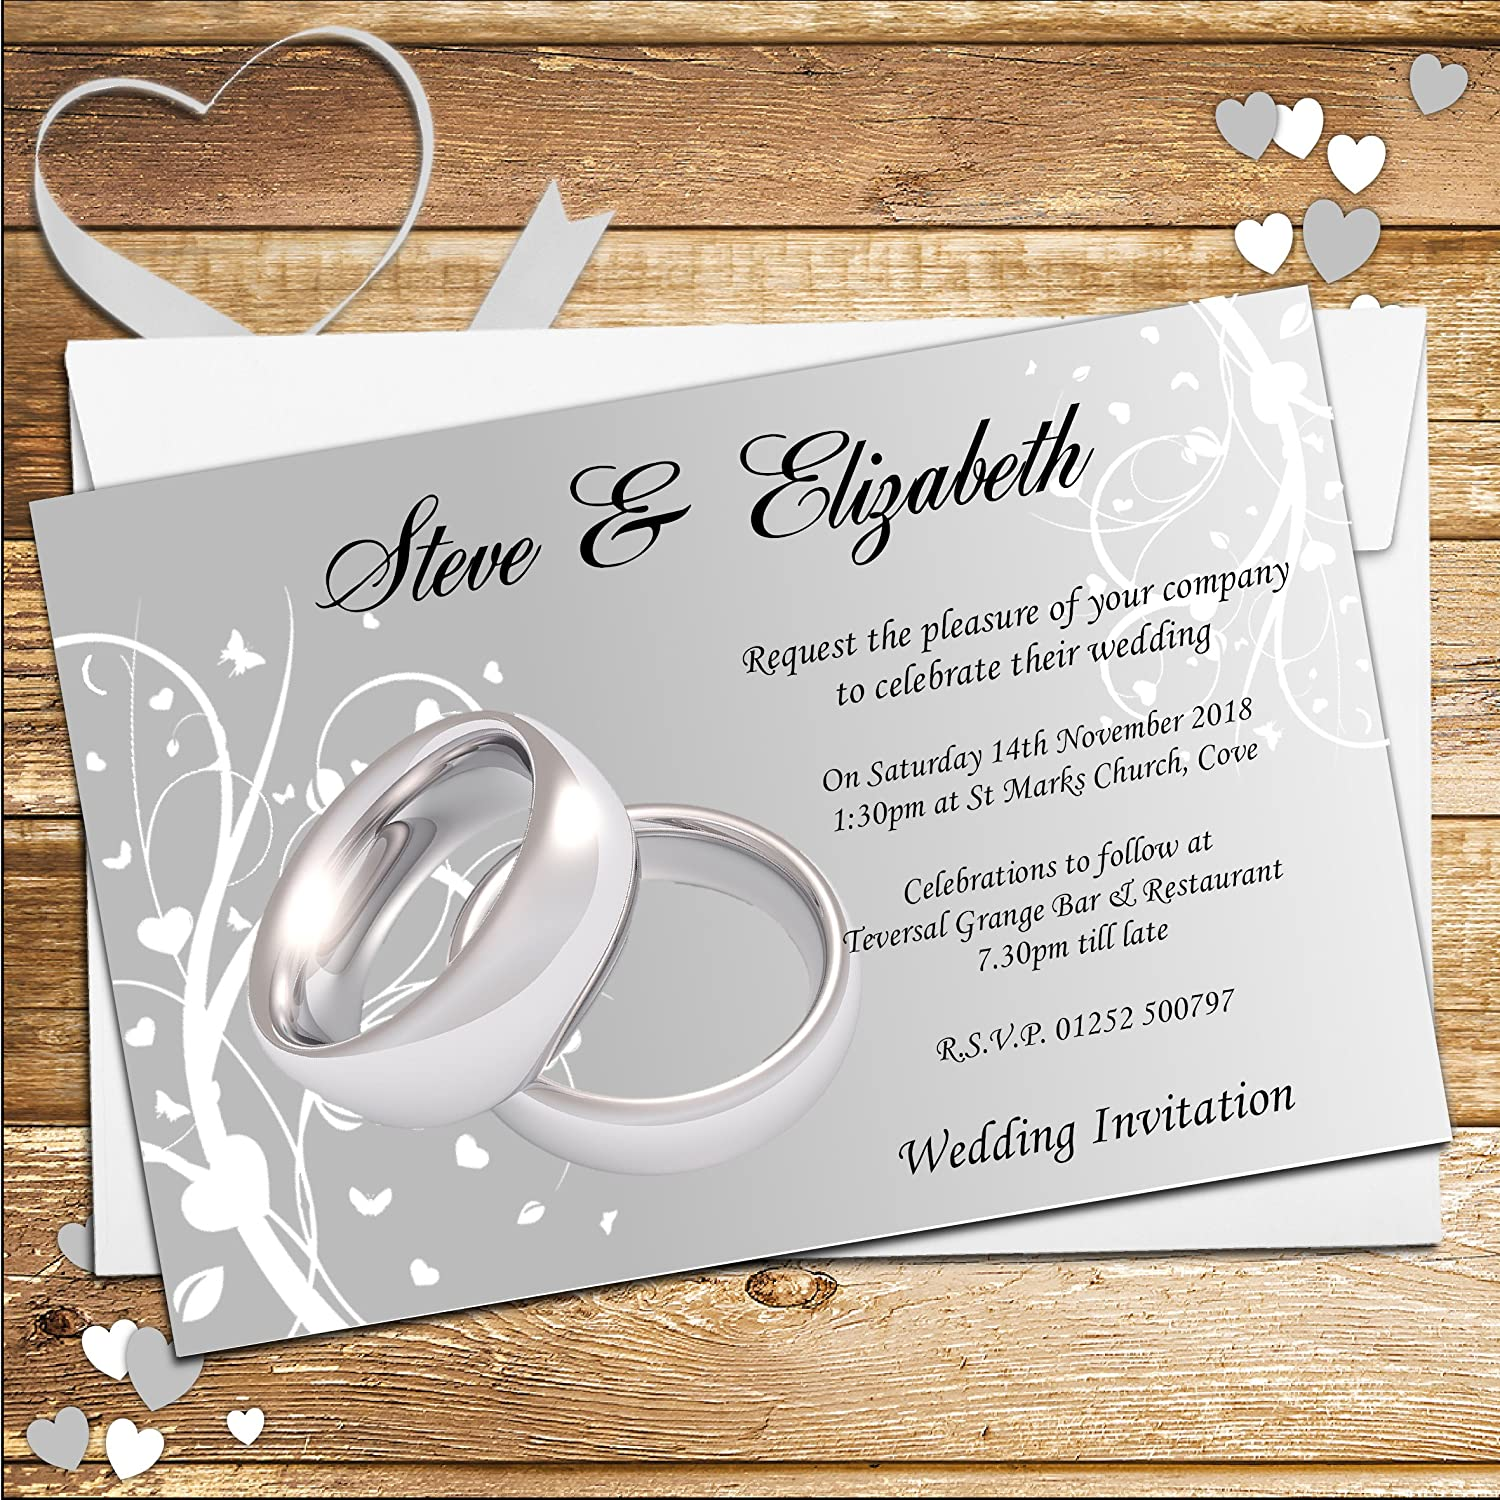 10 personalised silver rings wedding invitations n44 amazon 10 personalised silver rings wedding invitations n44 amazon kitchen home stopboris Image collections